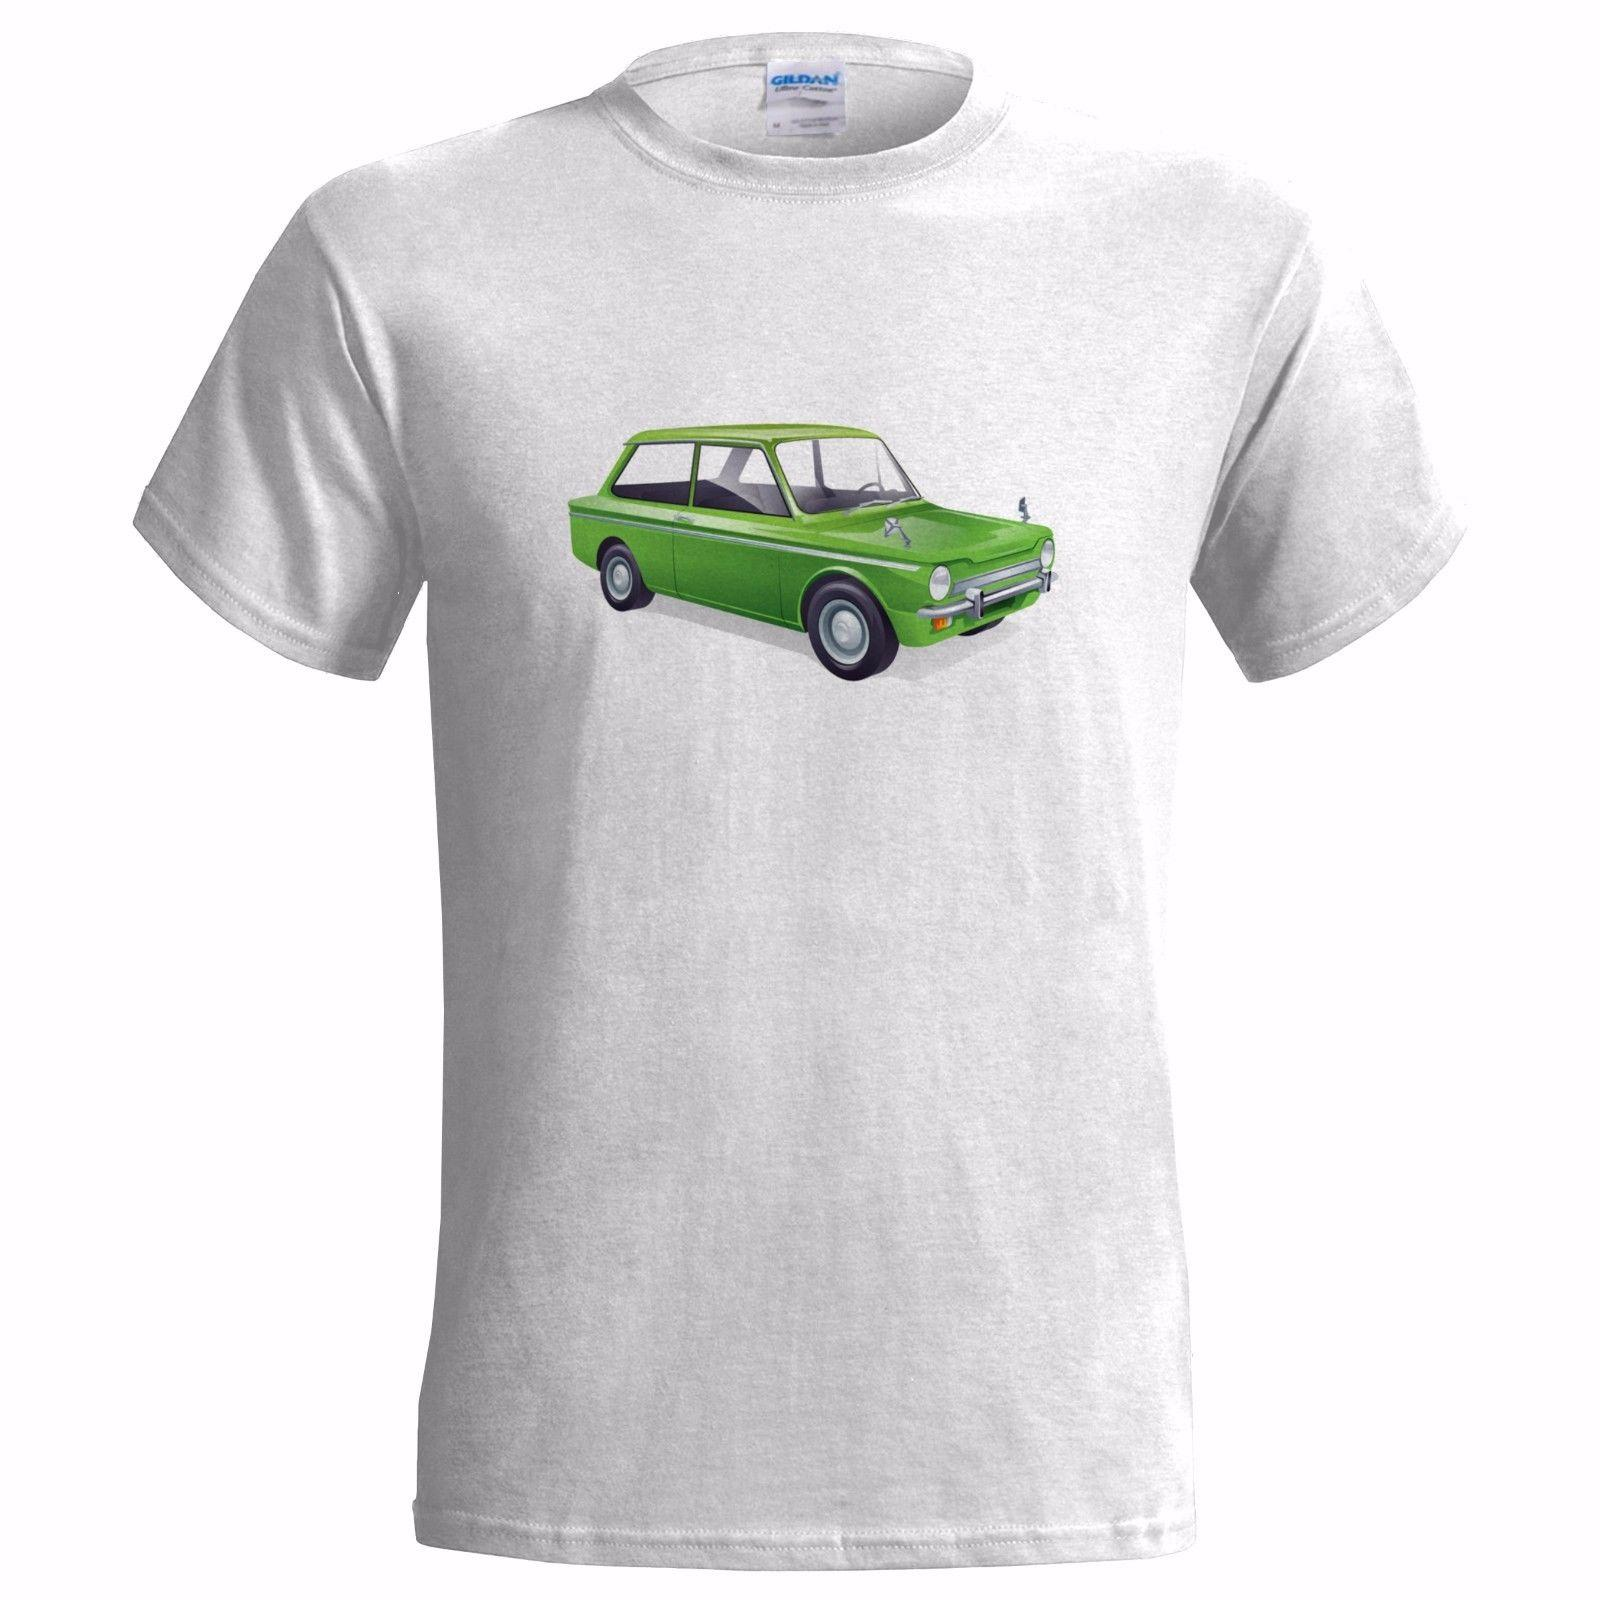 32ae461cc HILLMAN CLASSIC CAR MENS T SHIRT ART VEHICLE CARS IMP RETRO GIFT PRESENT  2018 Male Short Sleeve Cool Tops Funny Offensive T Shirts T Shirt Tee From  ...